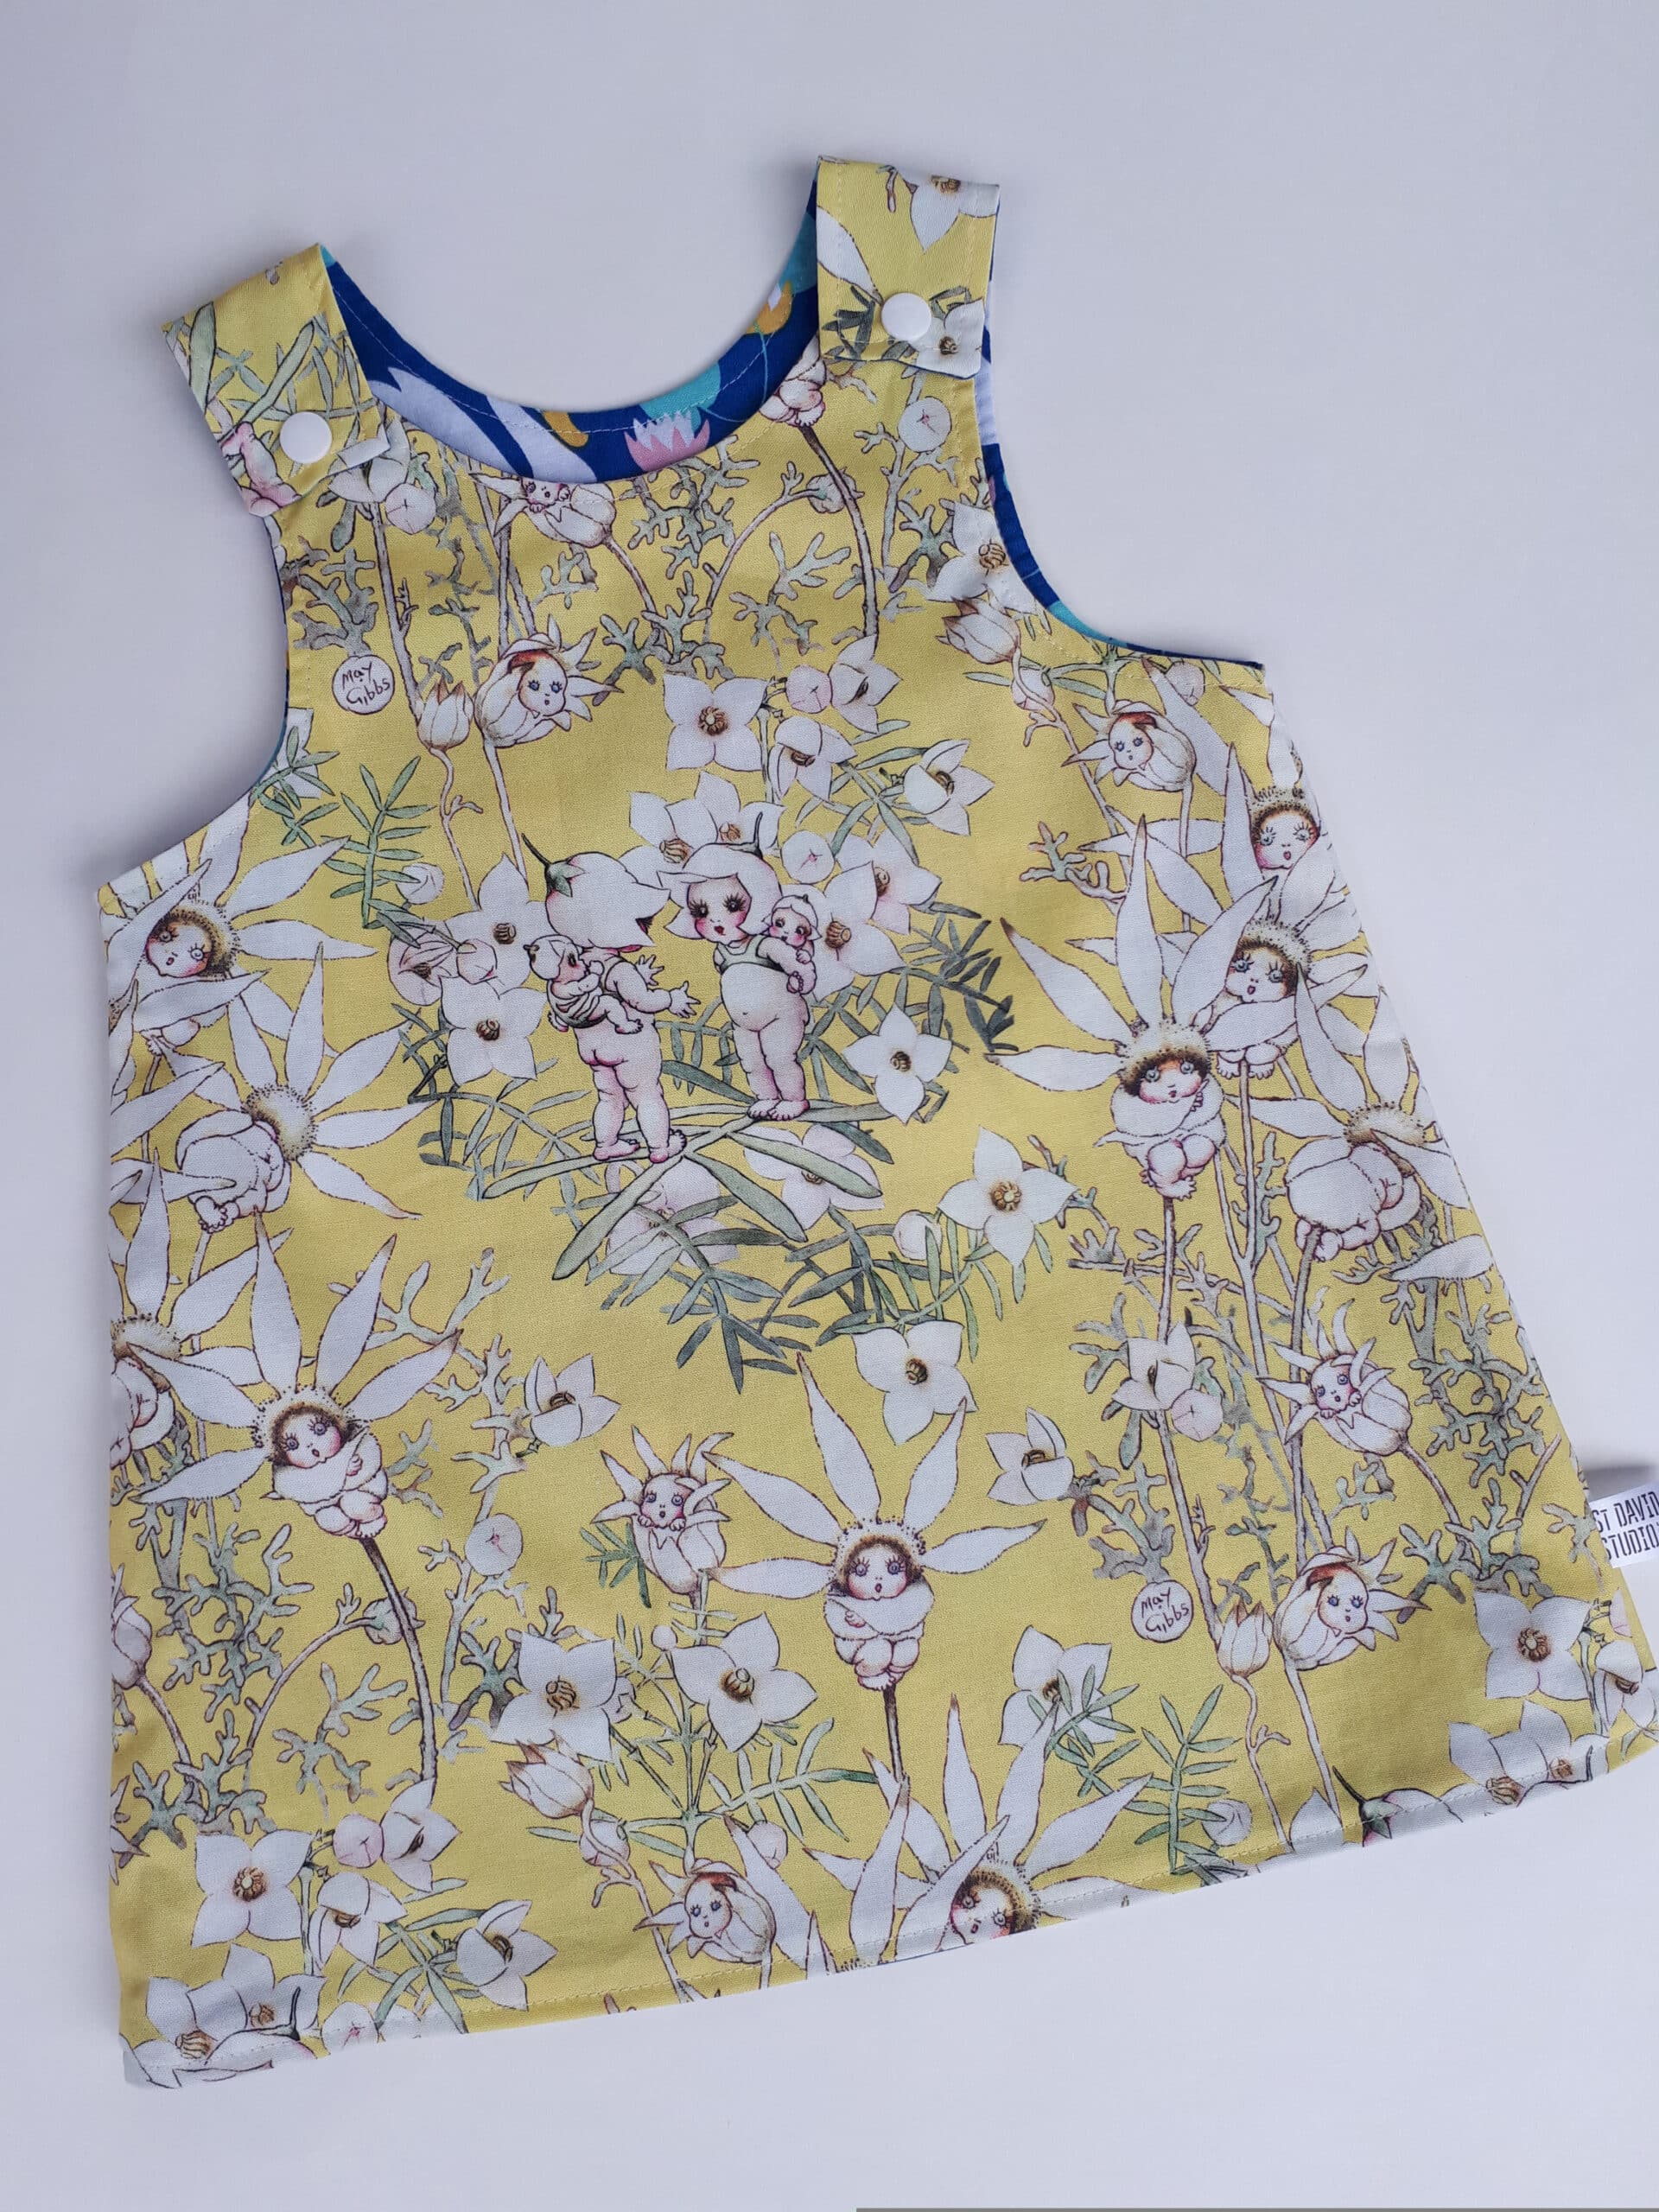 Children's Size 2 Reversible Pinafore Dress – Lemon Flannel Flowers And Swans By St David Studio 3065